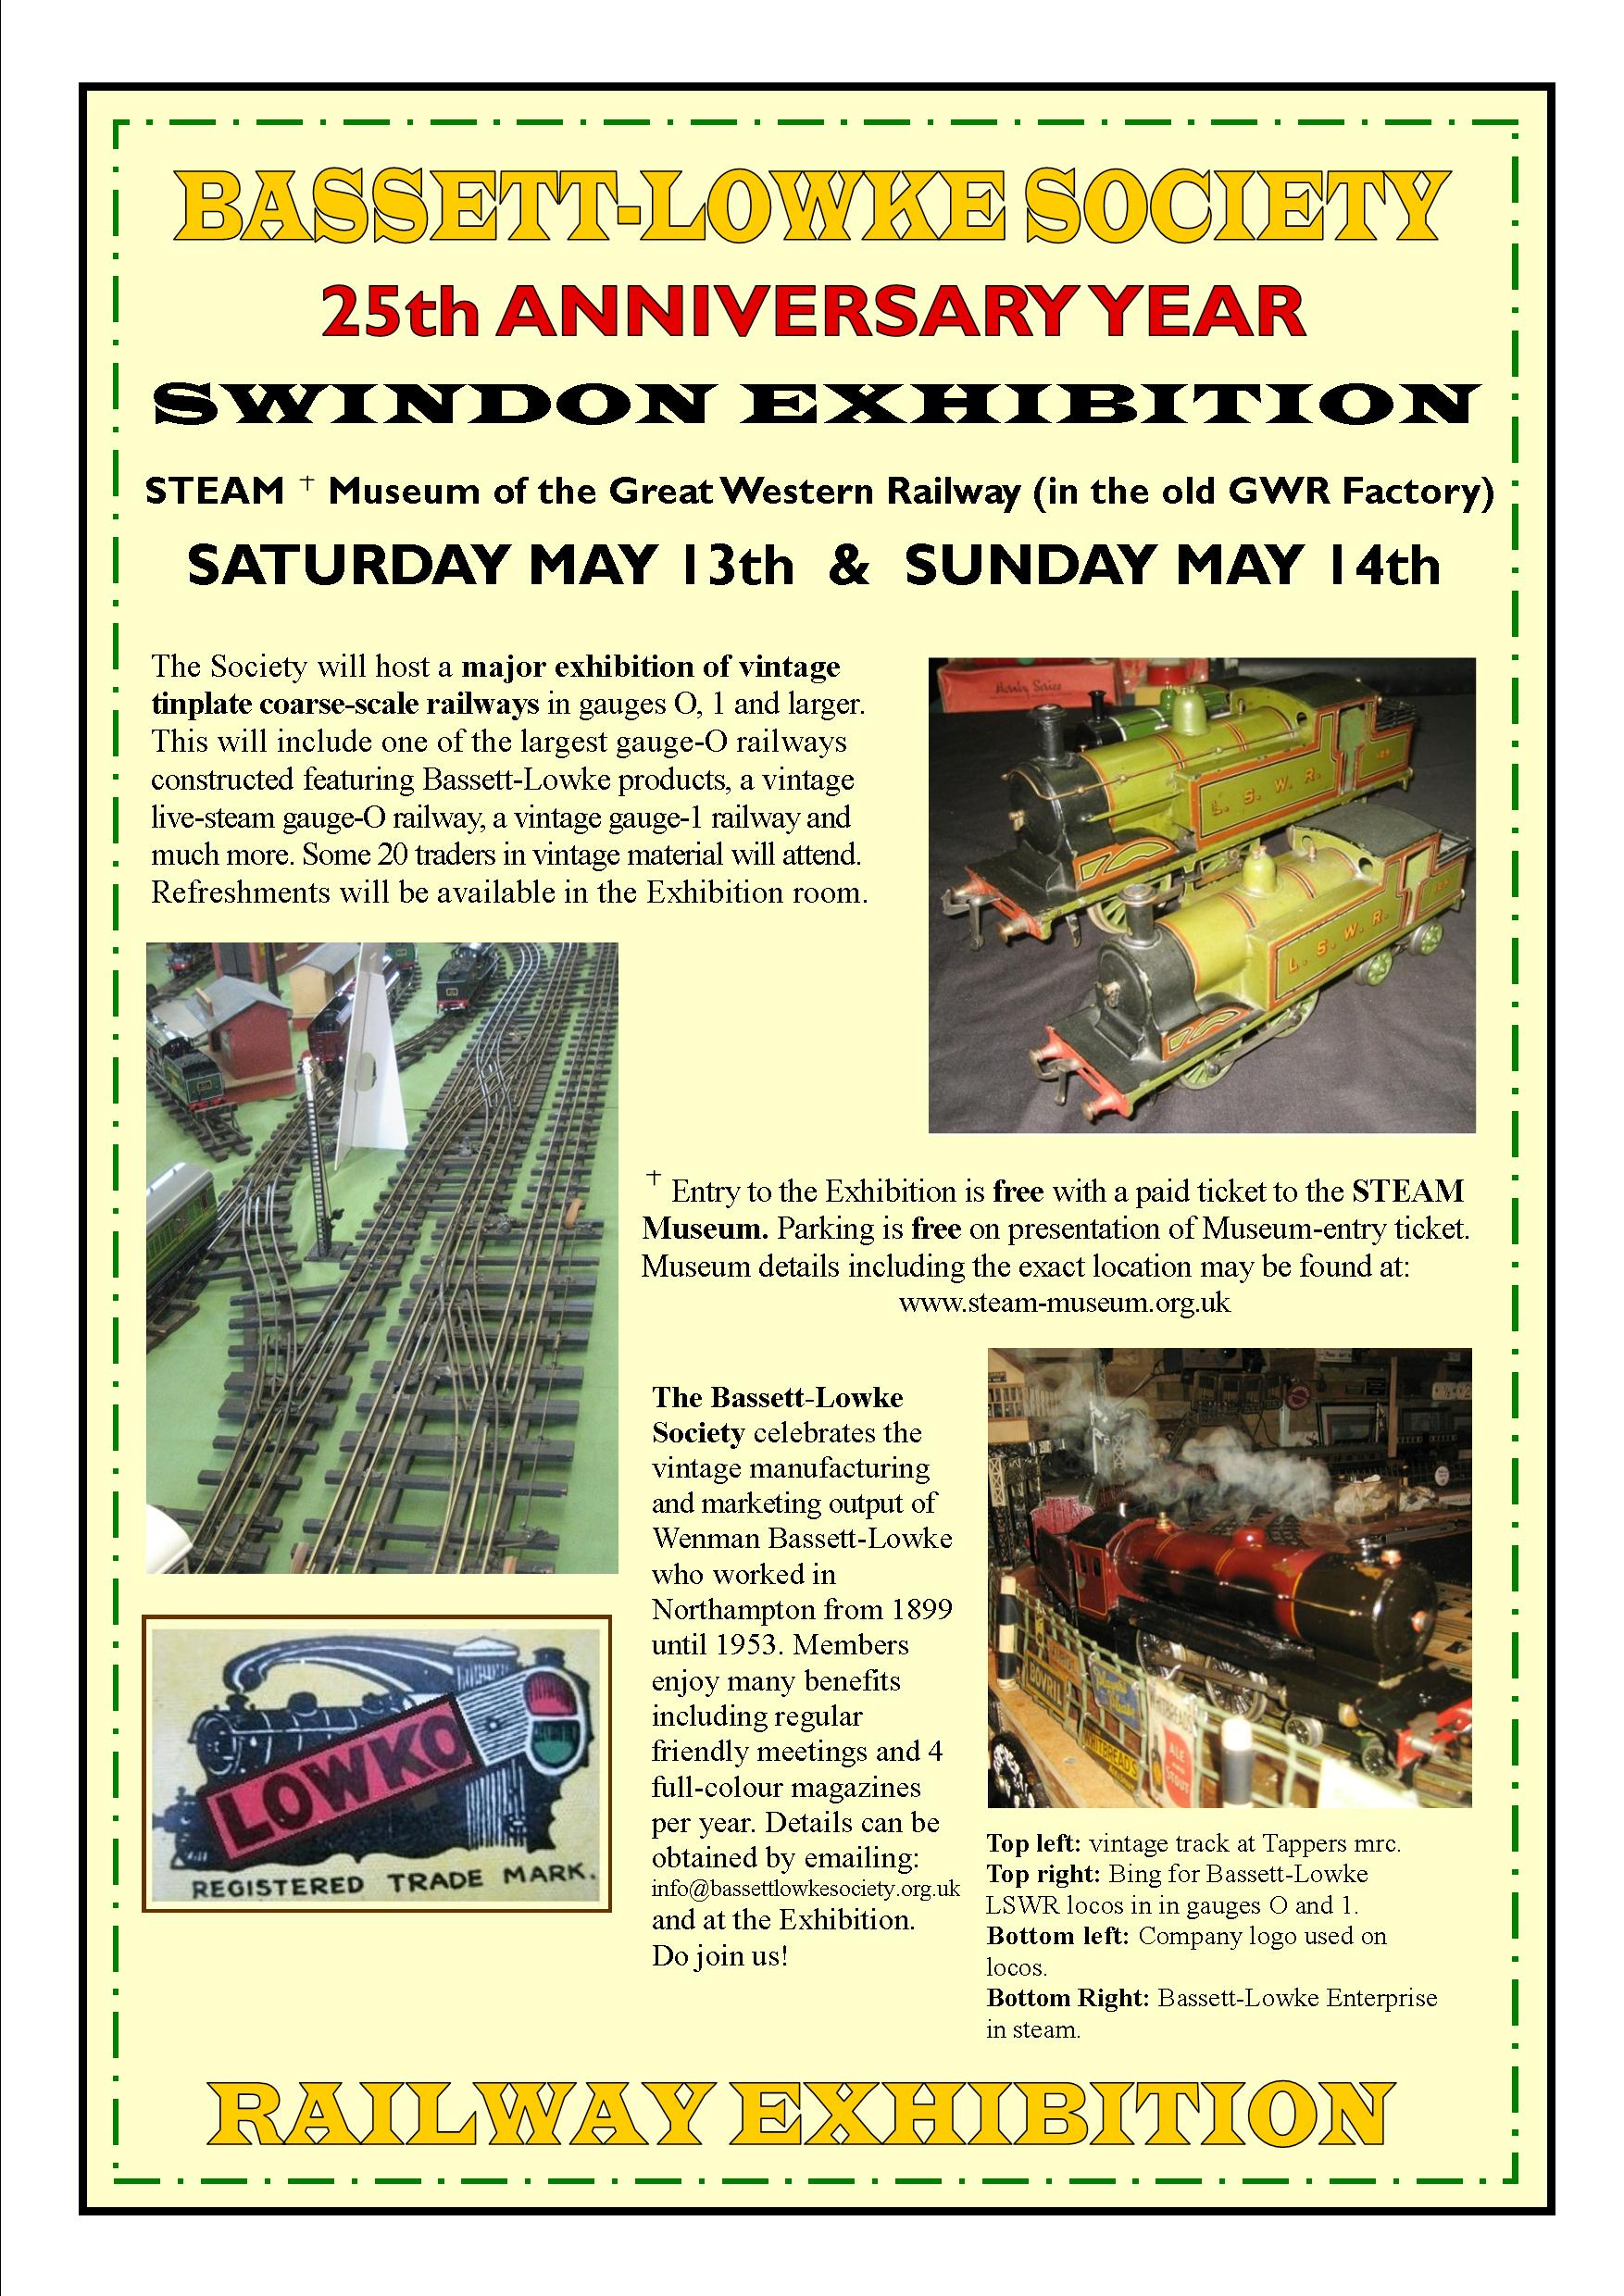 Bassett Lowke Society 25th Anniversary Railway Exhibition